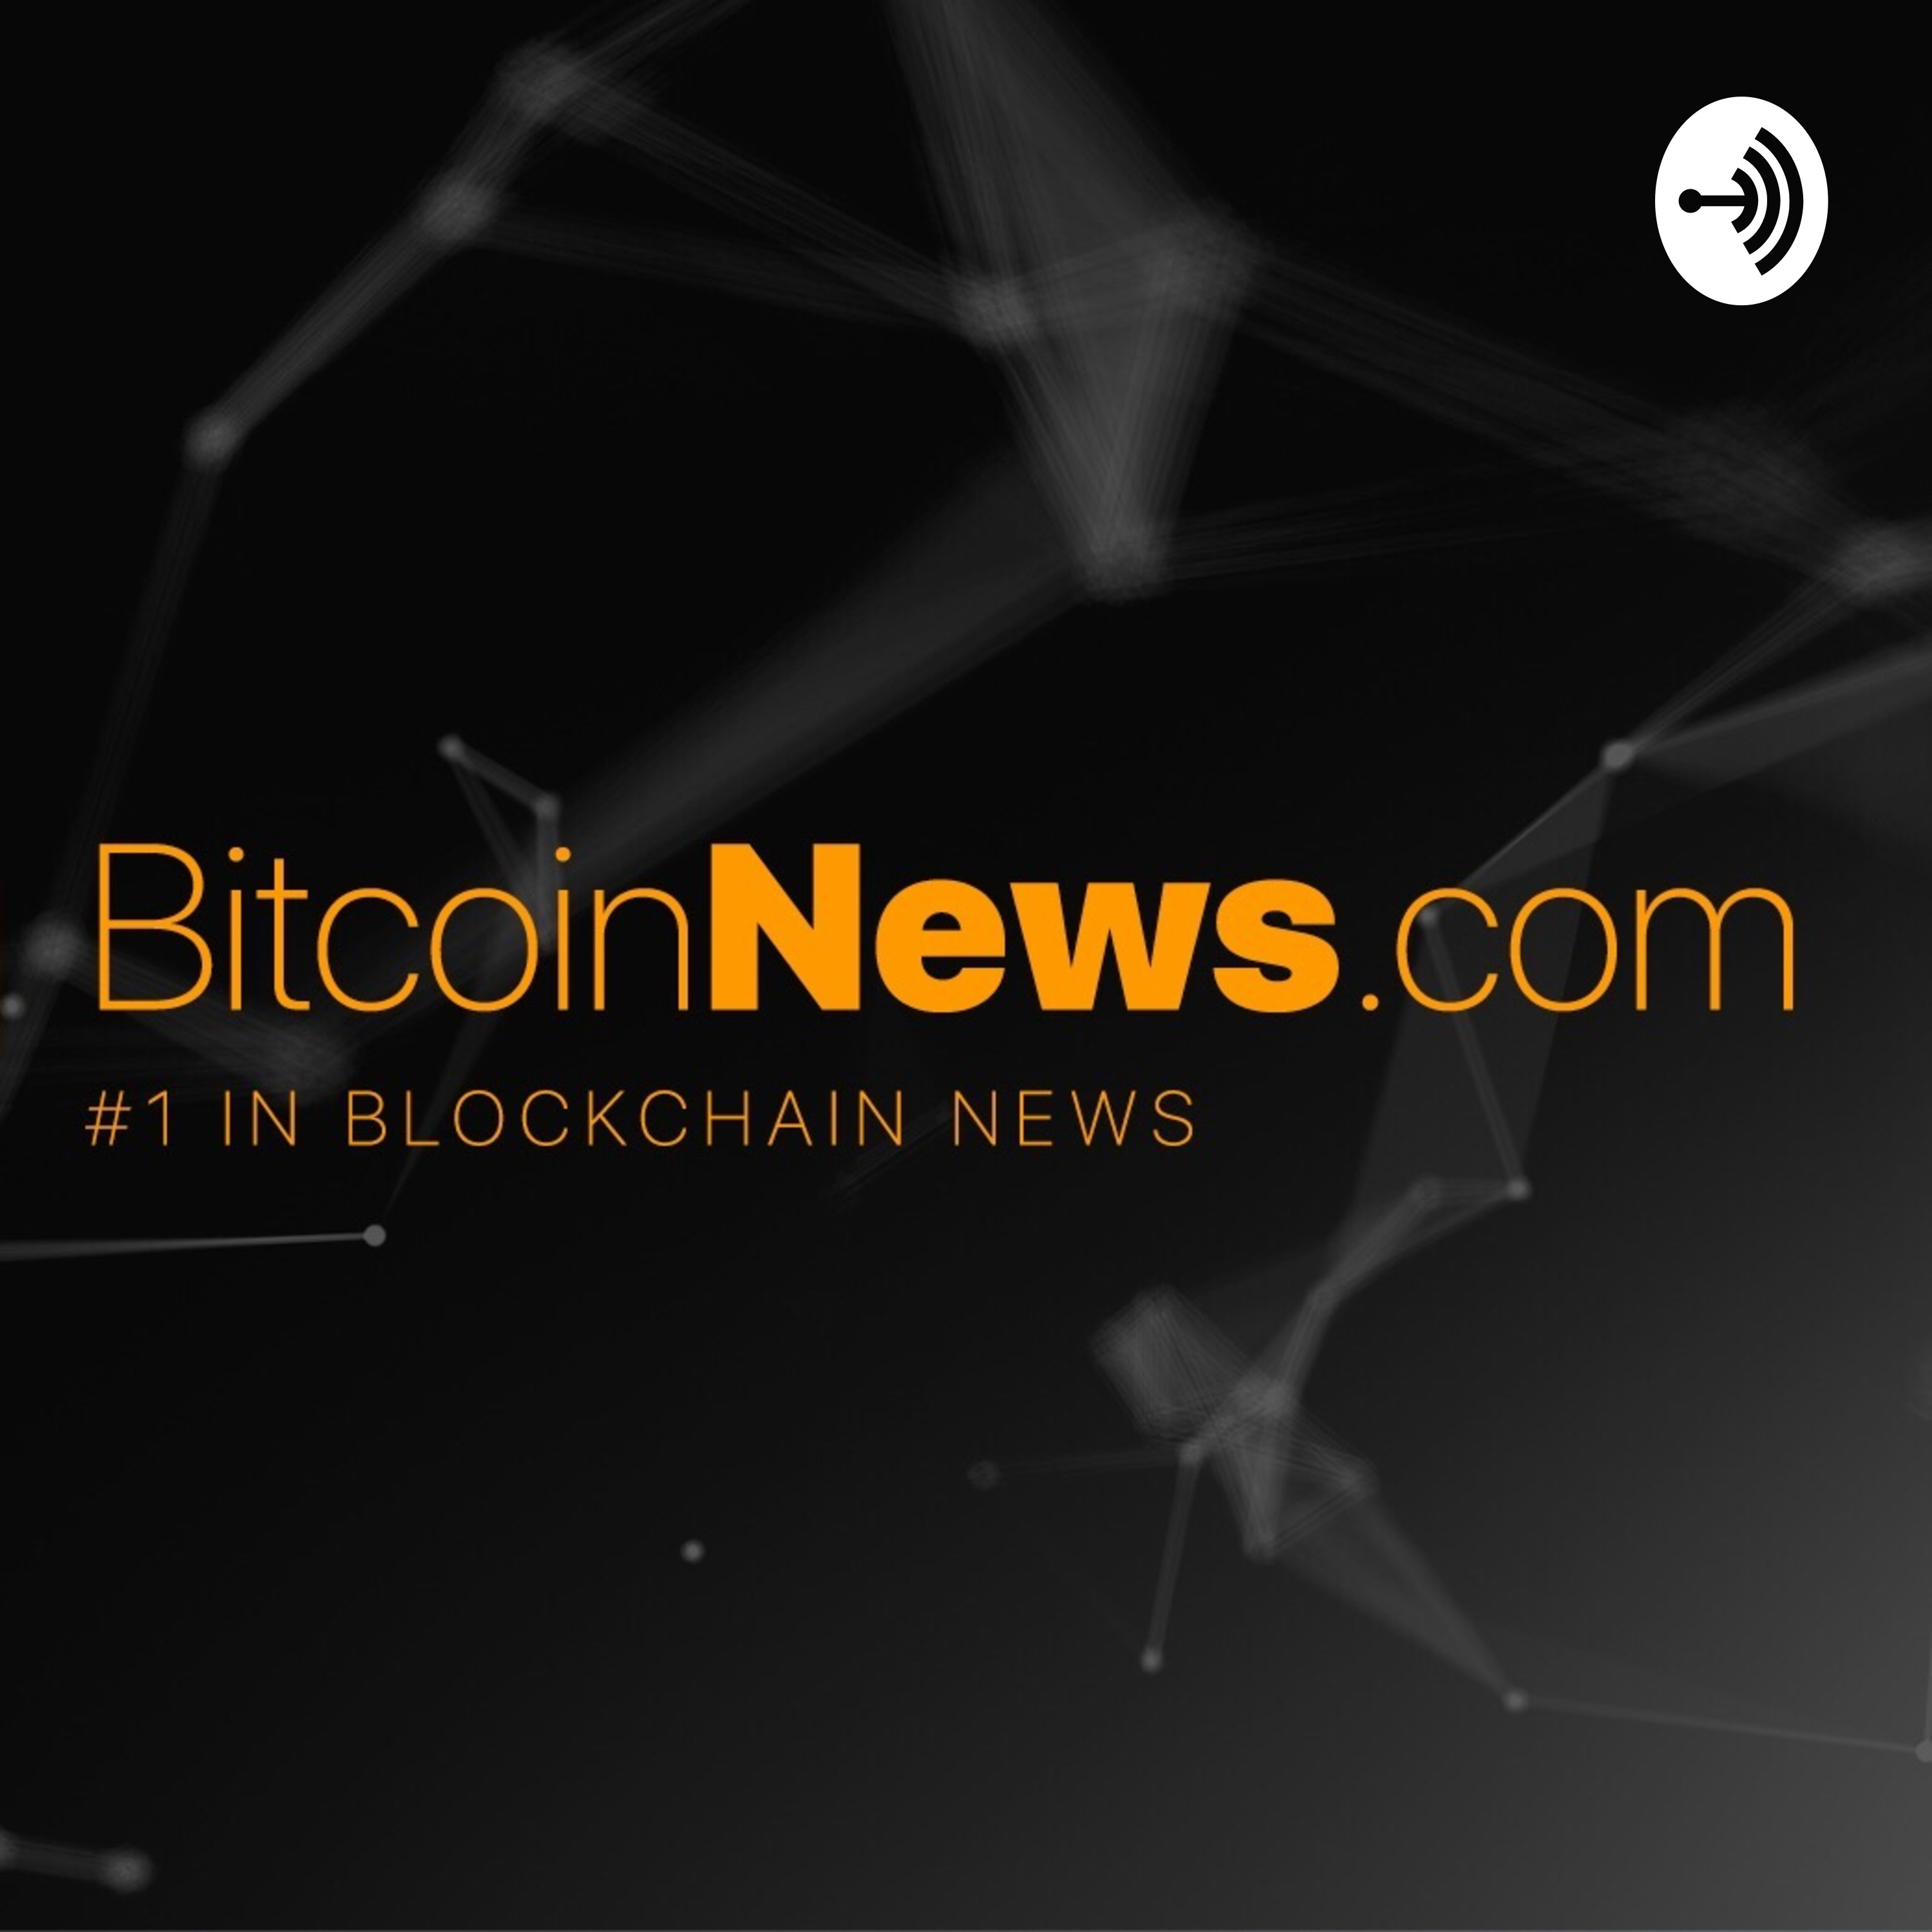 BitcoinNews.com Daily Podcast 9th January 2019: Tron (TRX) Rallying, Ethereum Planning For Serenity